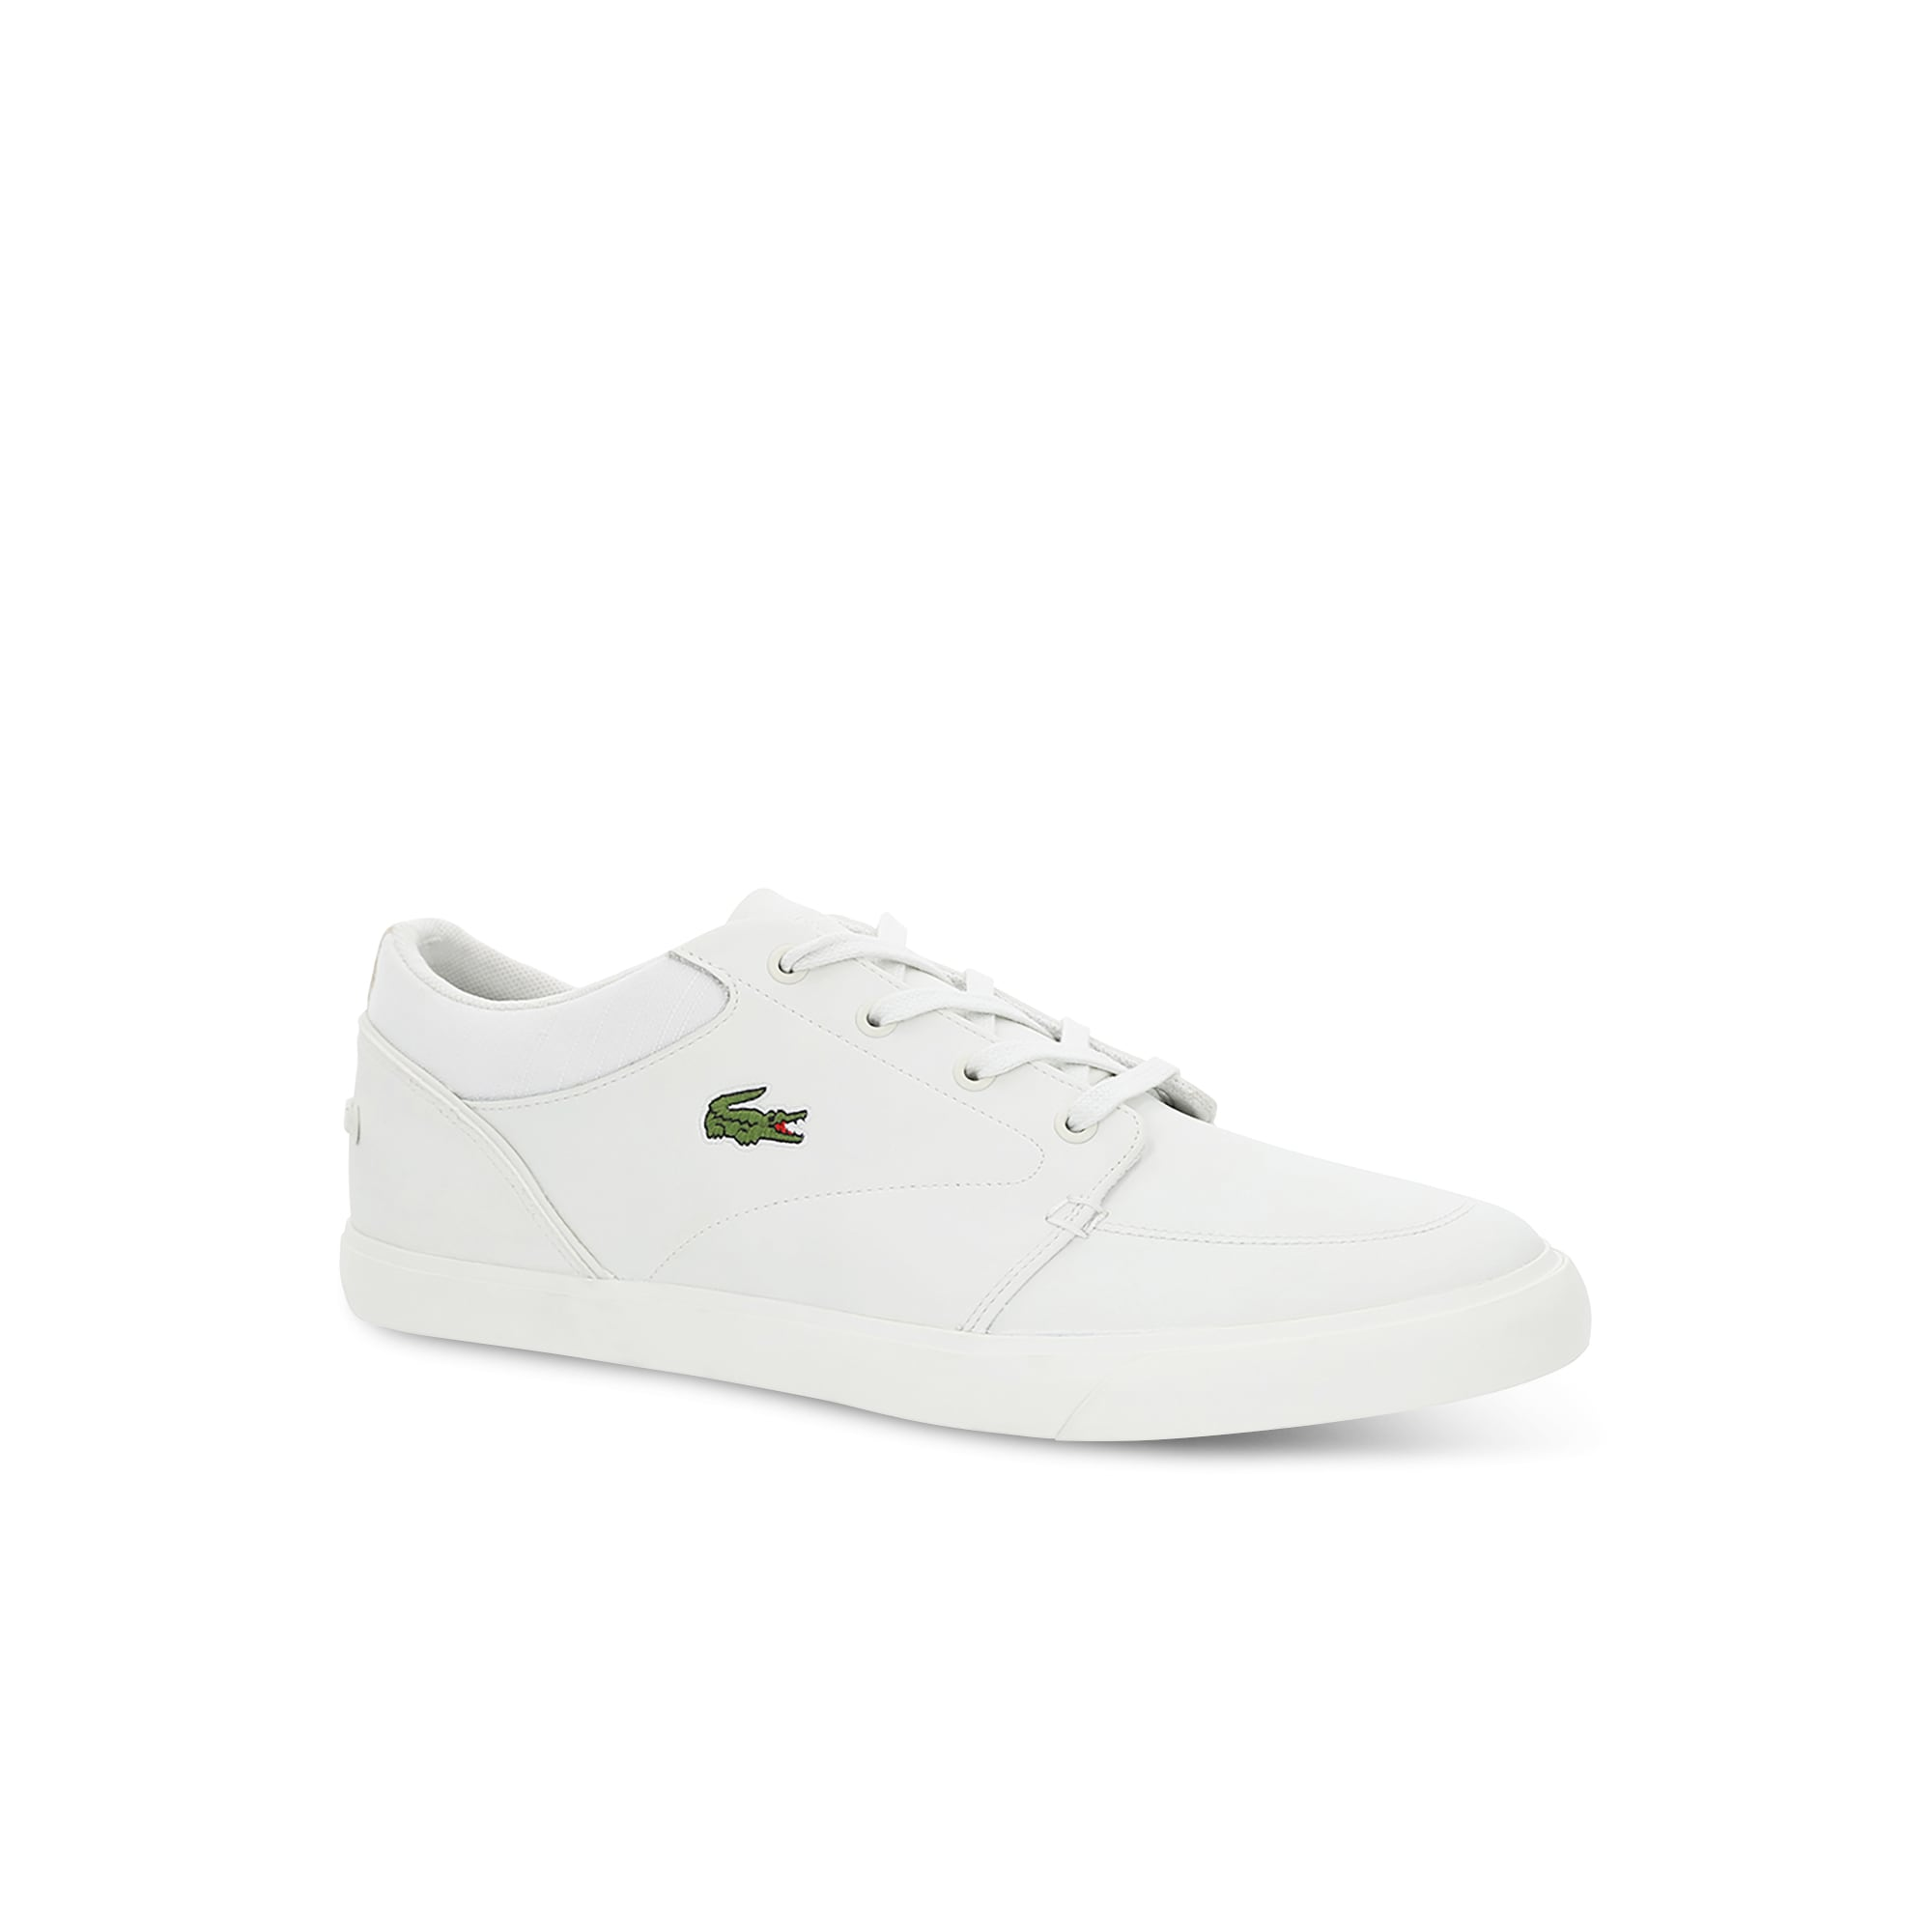 87407c3f12 Men's Bayliss Leather Sneakers | LACOSTE